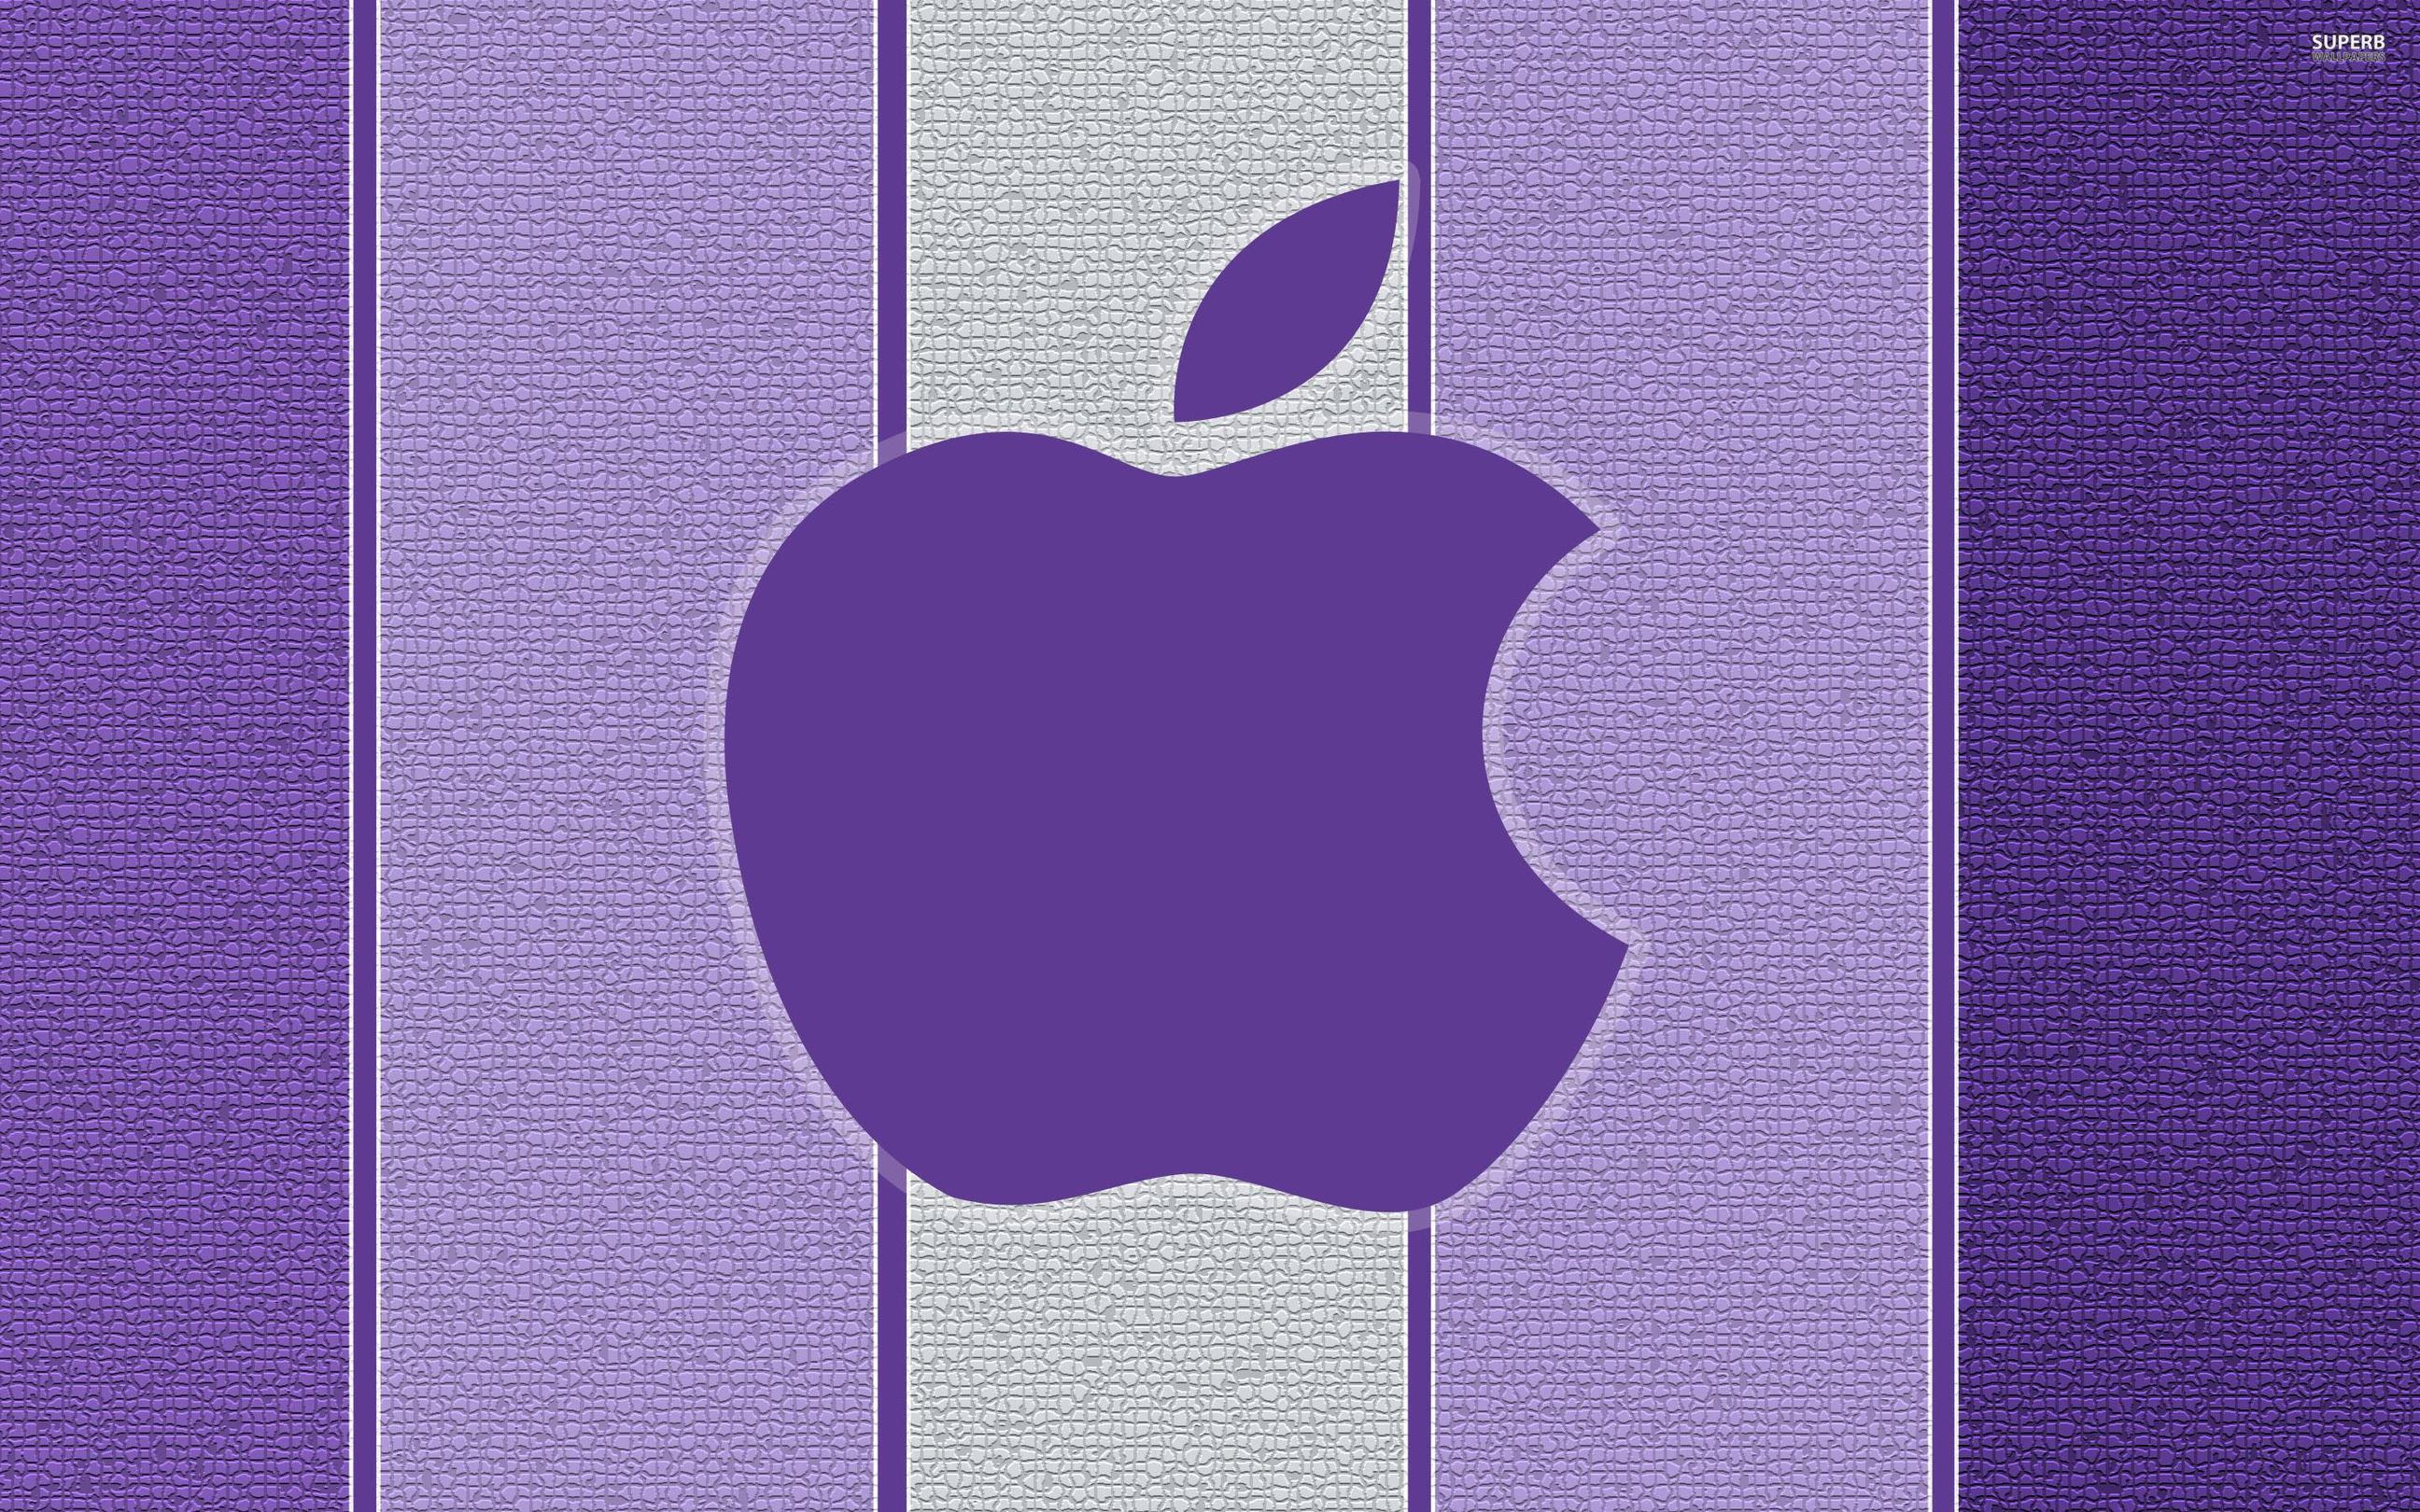 purple apple logo 4k - photo #9